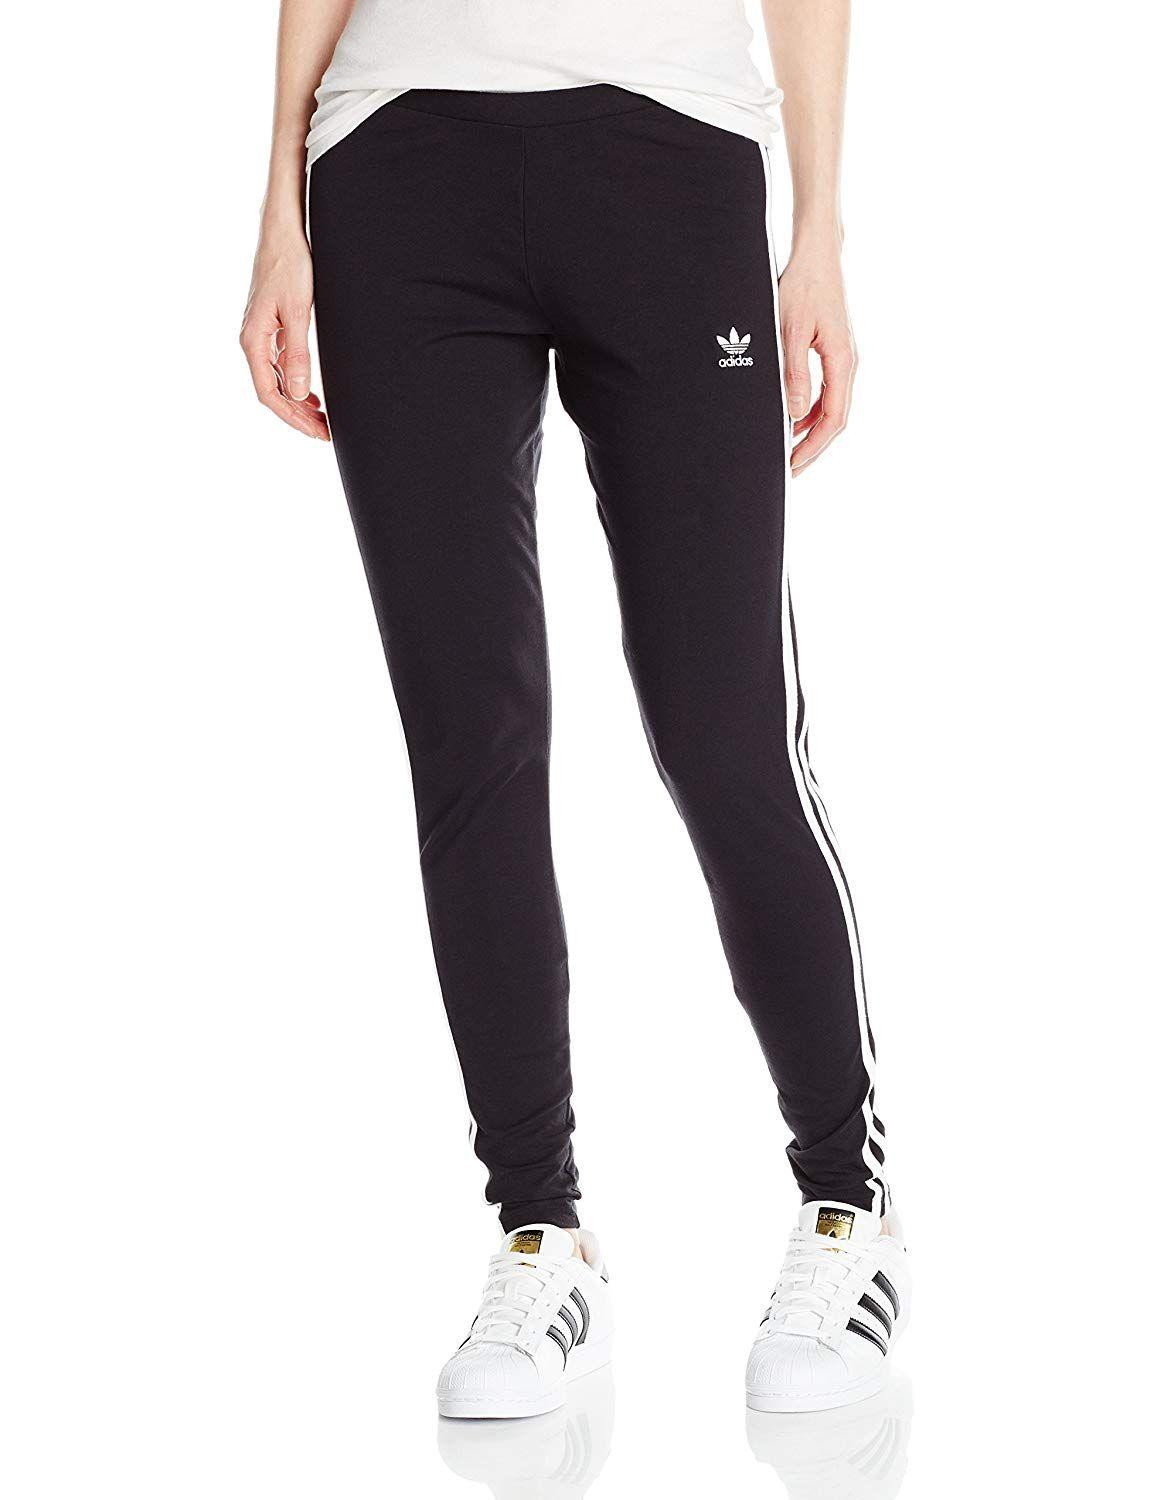 """<h3><a href=""""https://www.amazon.com/adidas-Originals-Womens-3-Stripes-Leggings/dp/B072JTX8FP"""" rel=""""nofollow noopener"""" target=""""_blank"""" data-ylk=""""slk:Adidas 3-Stripes Leggings"""" class=""""link rapid-noclick-resp"""">Adidas 3-Stripes Leggings</a></h3> <p>4.2 out of 5 stars and 1,246 reviews</p> <p><strong>Promising Review:</strong> Reviewers are split between thinking they got a good deal on a pair of brand name leggings and thinking they should be receiving a higher quality item for the same reason. However, <a href=""""https://www.amazon.com/gp/customer-reviews/R16NXDRDZI992H"""" rel=""""nofollow noopener"""" target=""""_blank"""" data-ylk=""""slk:one user"""" class=""""link rapid-noclick-resp"""">one user</a> claims they're a good buy so long as you don't intend to do any high-impact workouts in them: """"I ordered these for a bar crawl that was 90s themed. They were perfect for that. The material is see through so that's something to take into consideration. They were pretty comfortable too. I'm not a fan of working out in leggings with this type of material though. Now I just wear them around my house with an oversized sweatshirt to lounge around in.""""</p> <br> <br> <strong>Adidas</strong> 3-Stripes Leggings, $29, available at <a href=""""https://www.amazon.com/adidas-Originals-Womens-3-Stripes-Leggings/dp/B072JTX8FP"""" rel=""""nofollow noopener"""" target=""""_blank"""" data-ylk=""""slk:Amazon"""" class=""""link rapid-noclick-resp"""">Amazon</a>"""